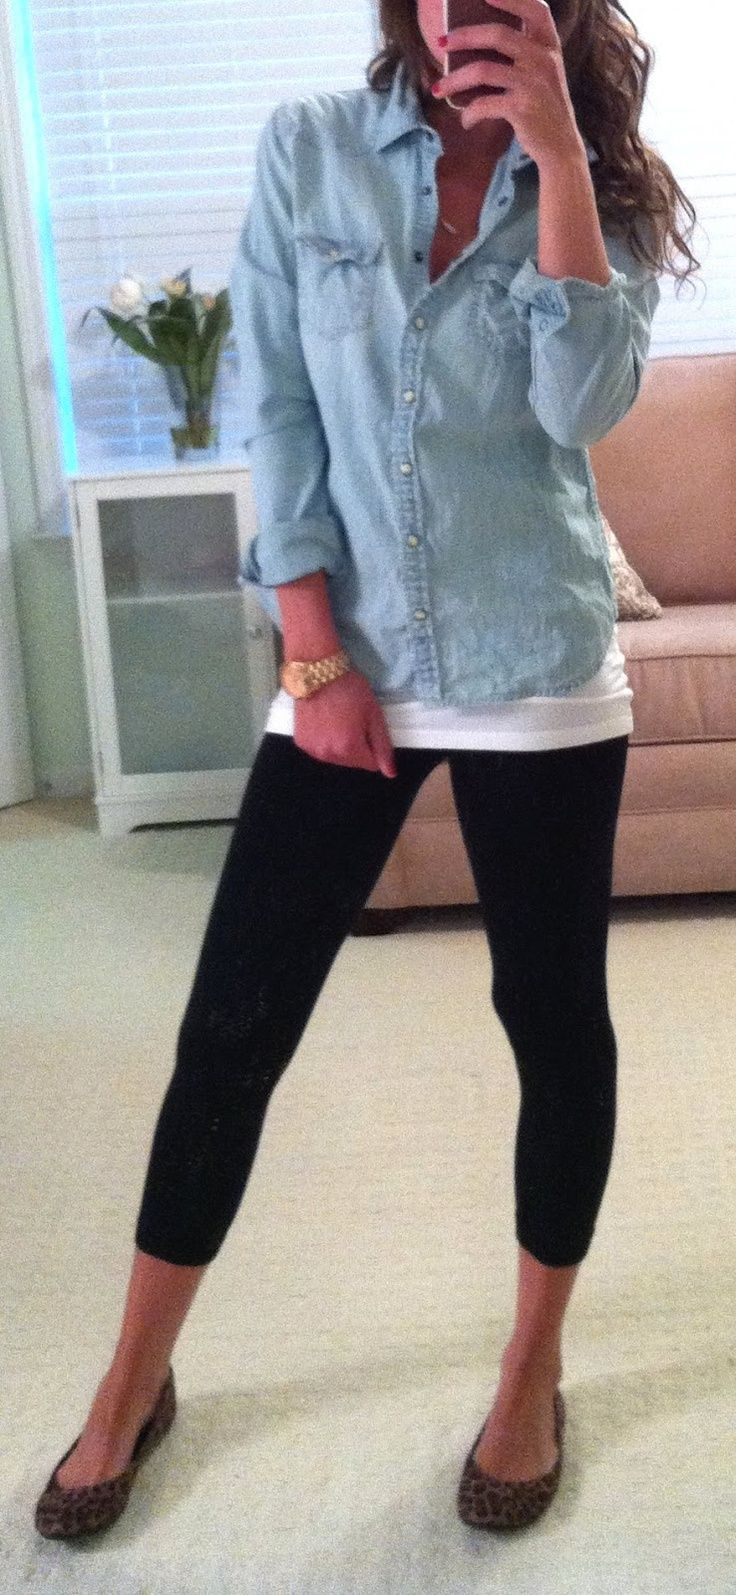 denim, leggings and flats. I'd probably wear black pants instead of leggings, but this outfit is cute